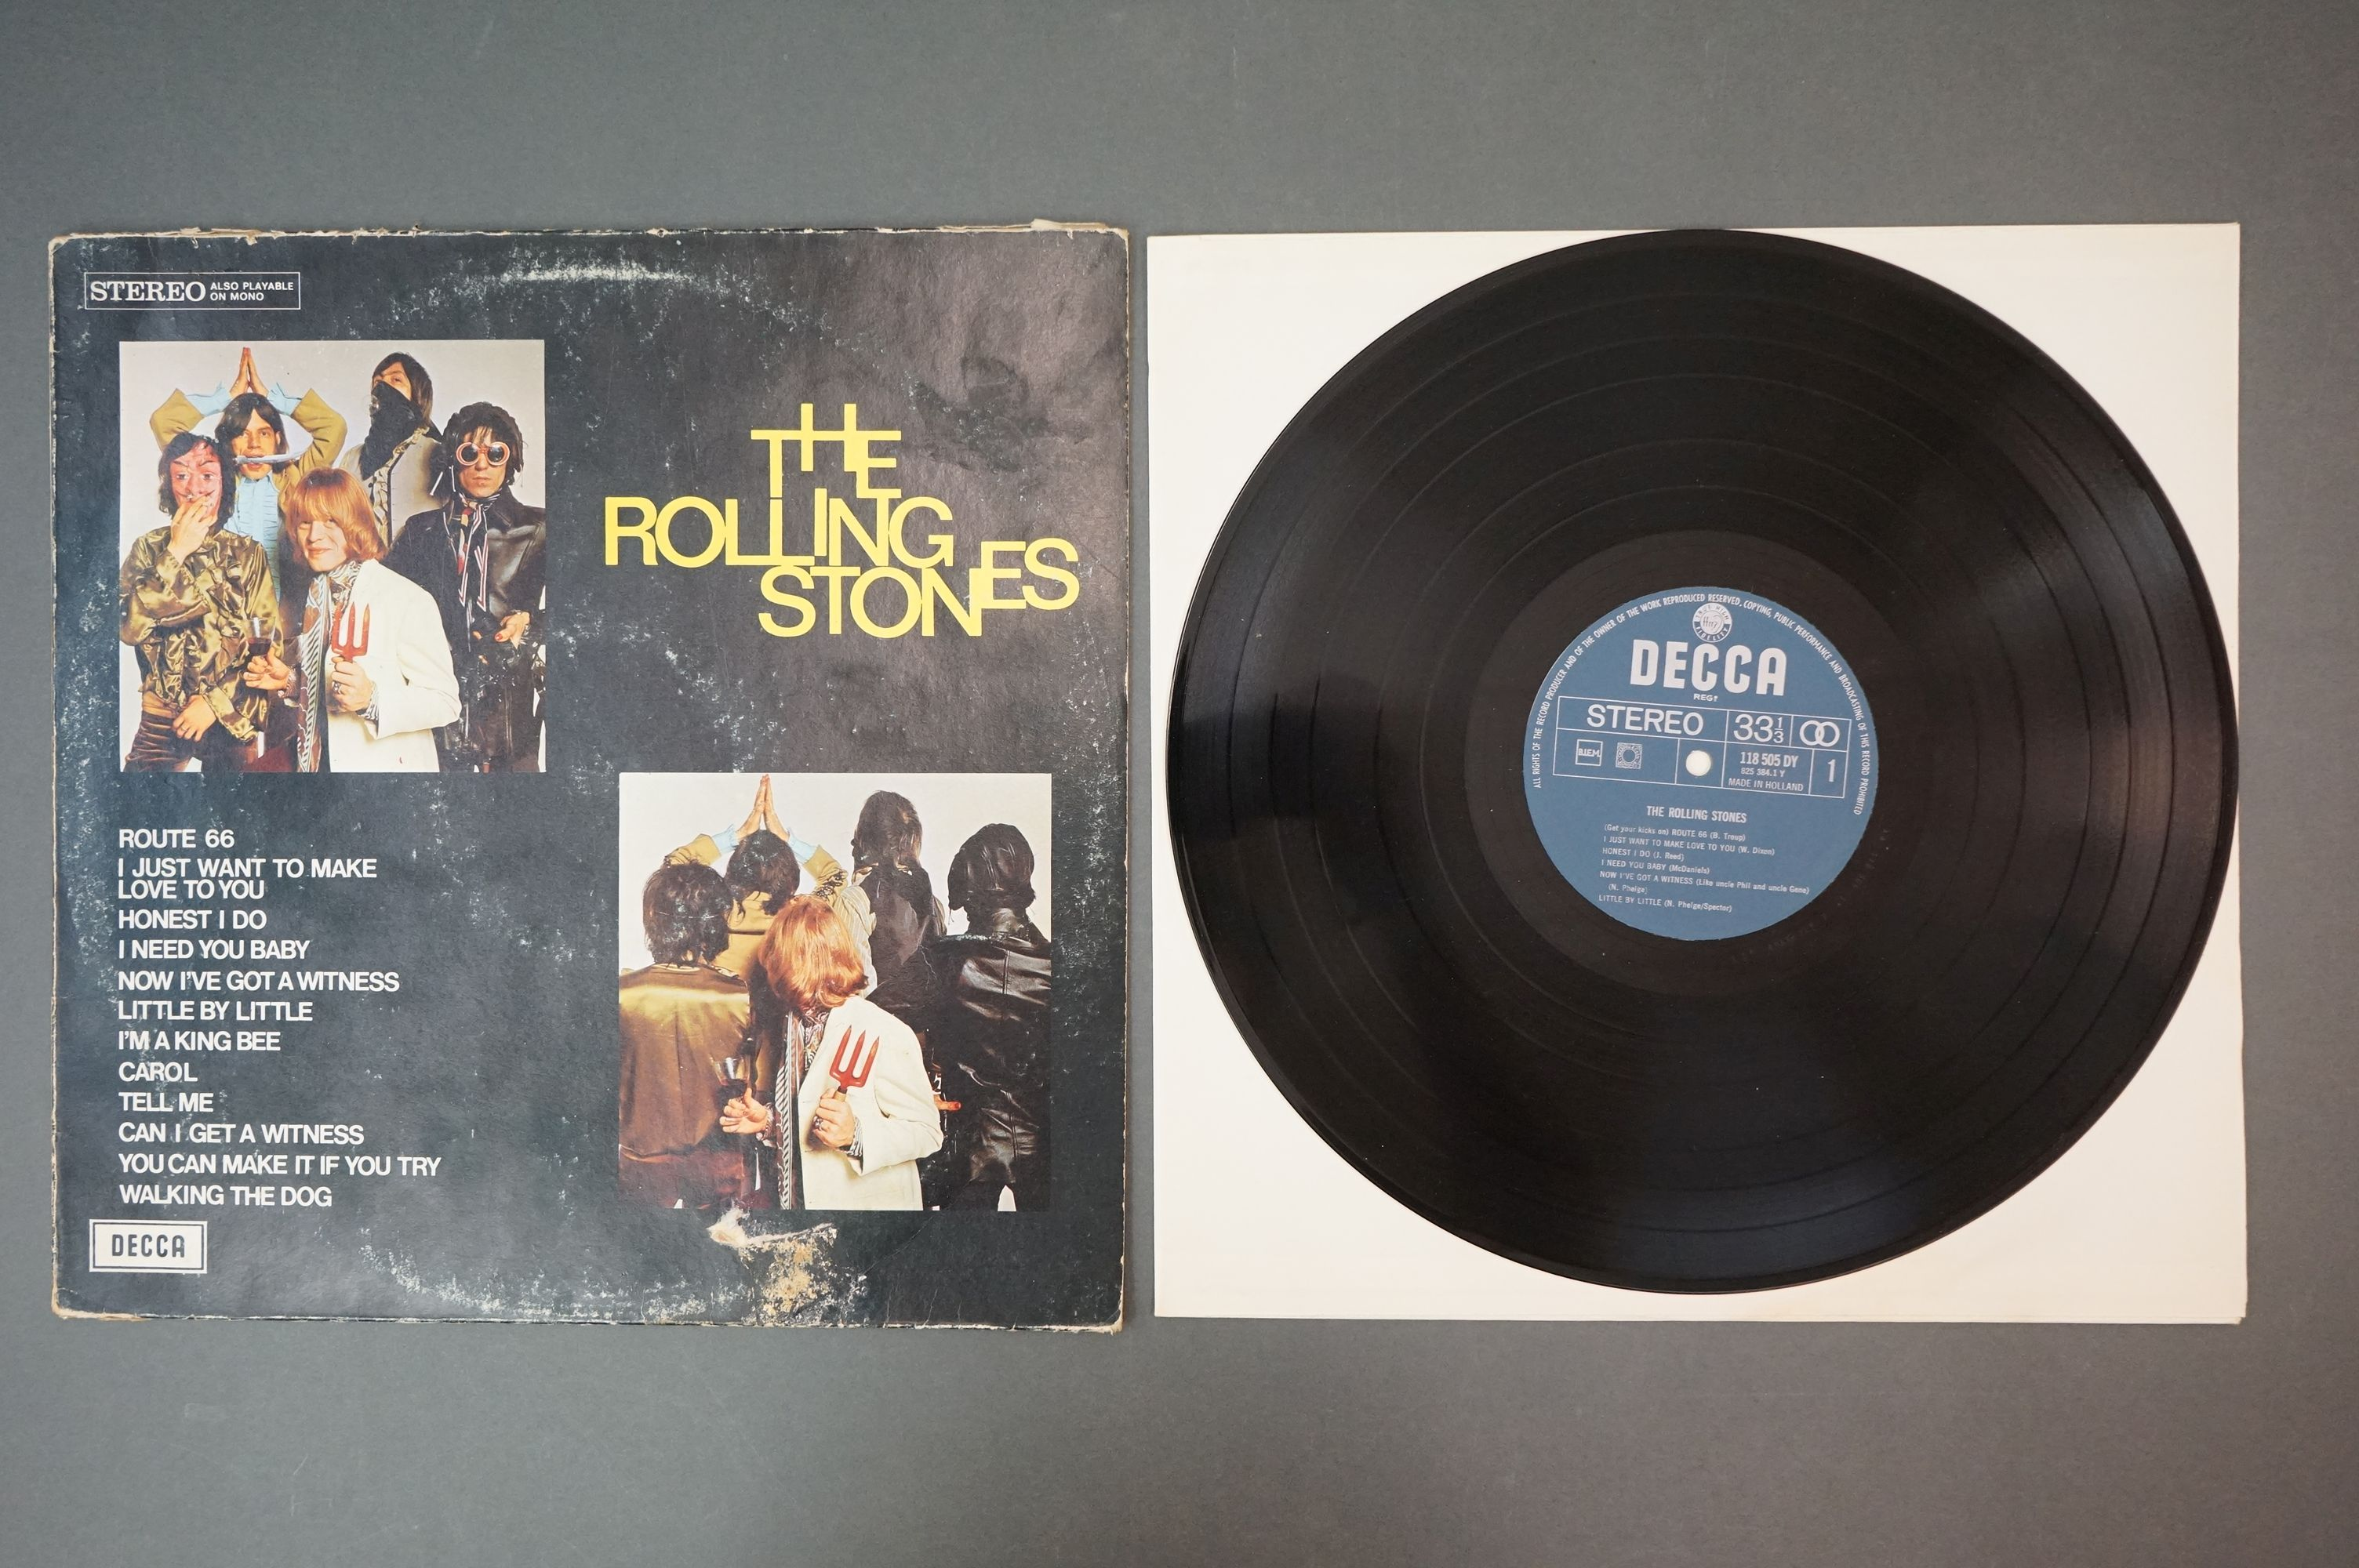 Vinyl - Rolling Stones 3 LP's to include Rolled Gold and Self Titled (both Dutch pressings), and - Image 9 of 10